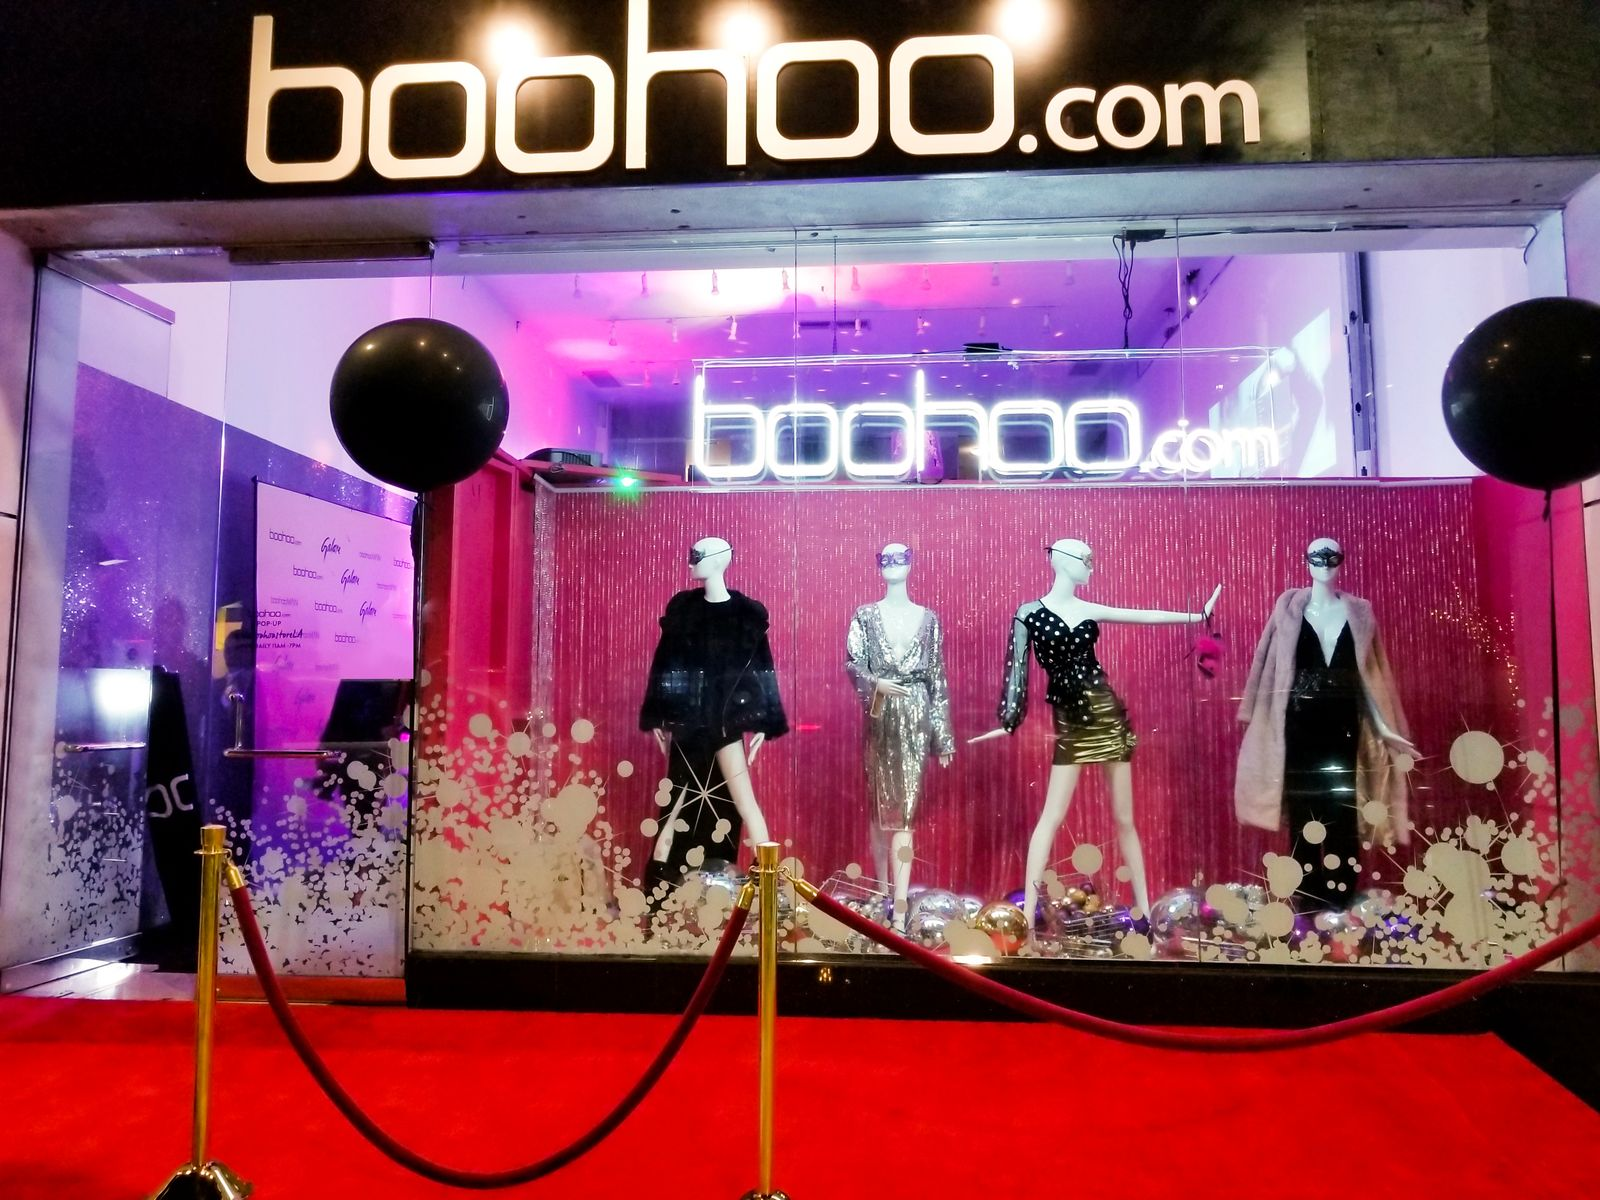 Boohoo.com 3d sign on a black background and in an elegant style made of acrylic and aluminum for clothing store branding